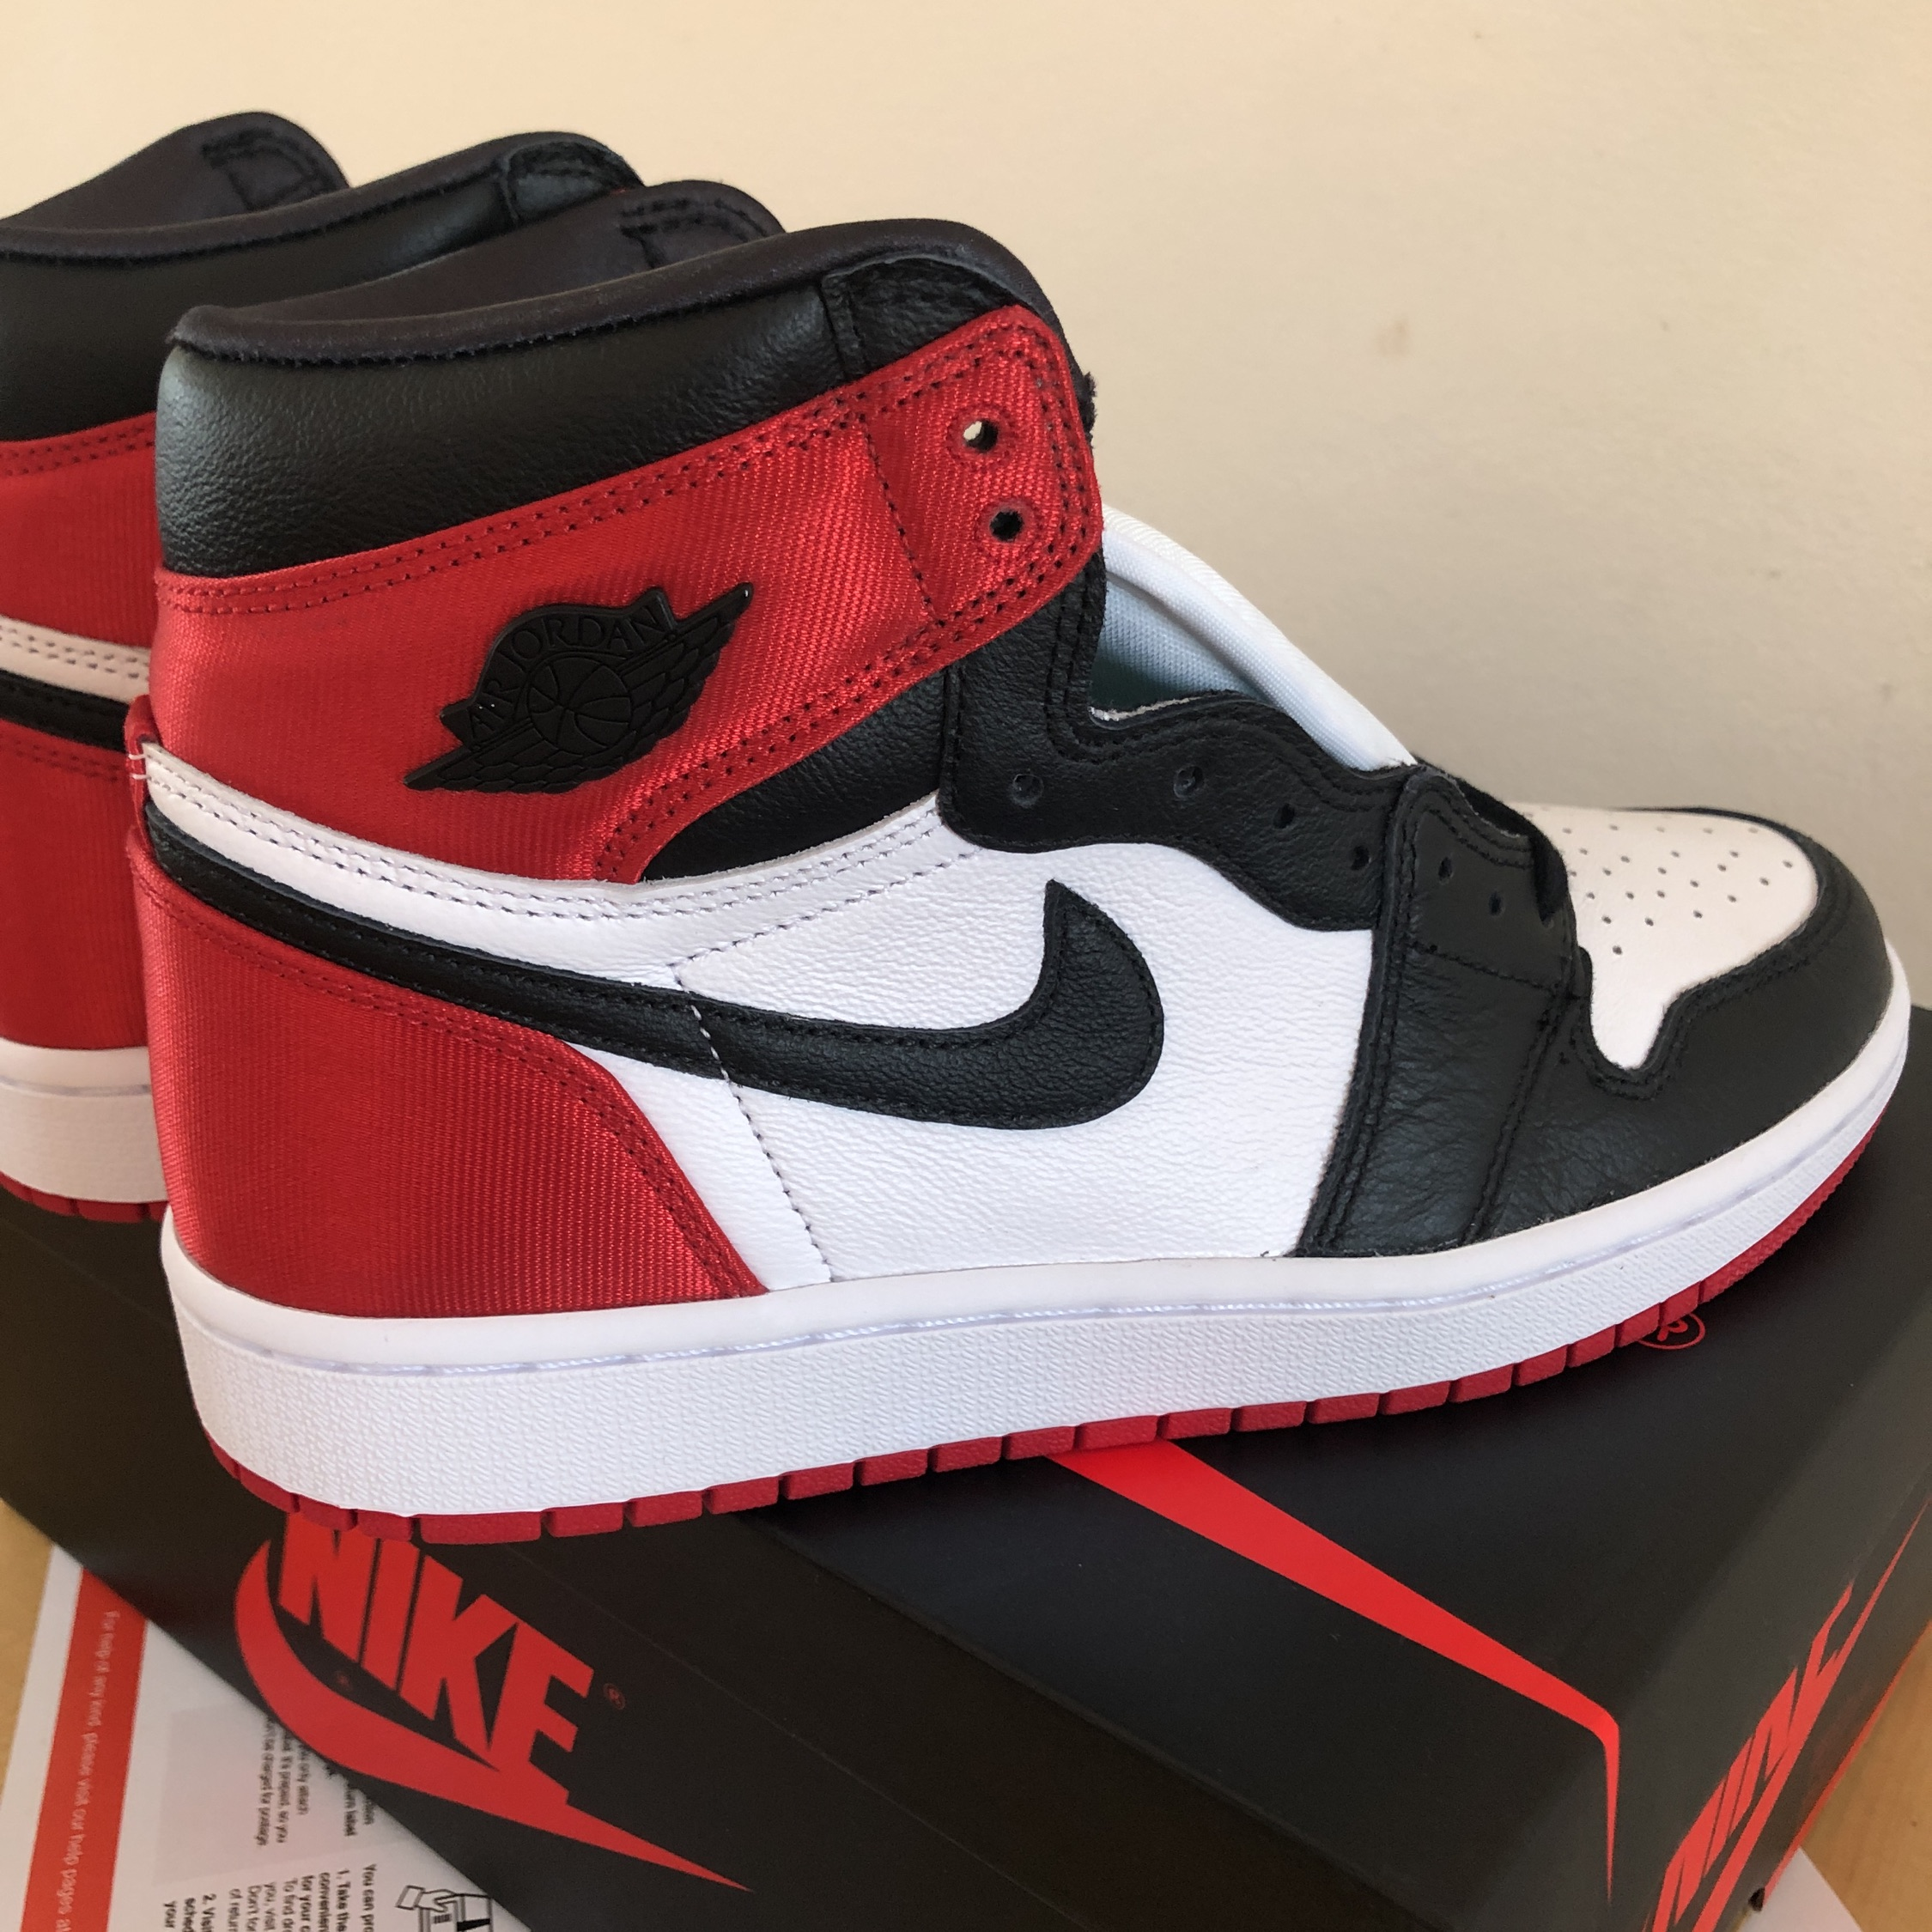 half off ebc69 02817 Air Jordan 1 Satin Black Toe